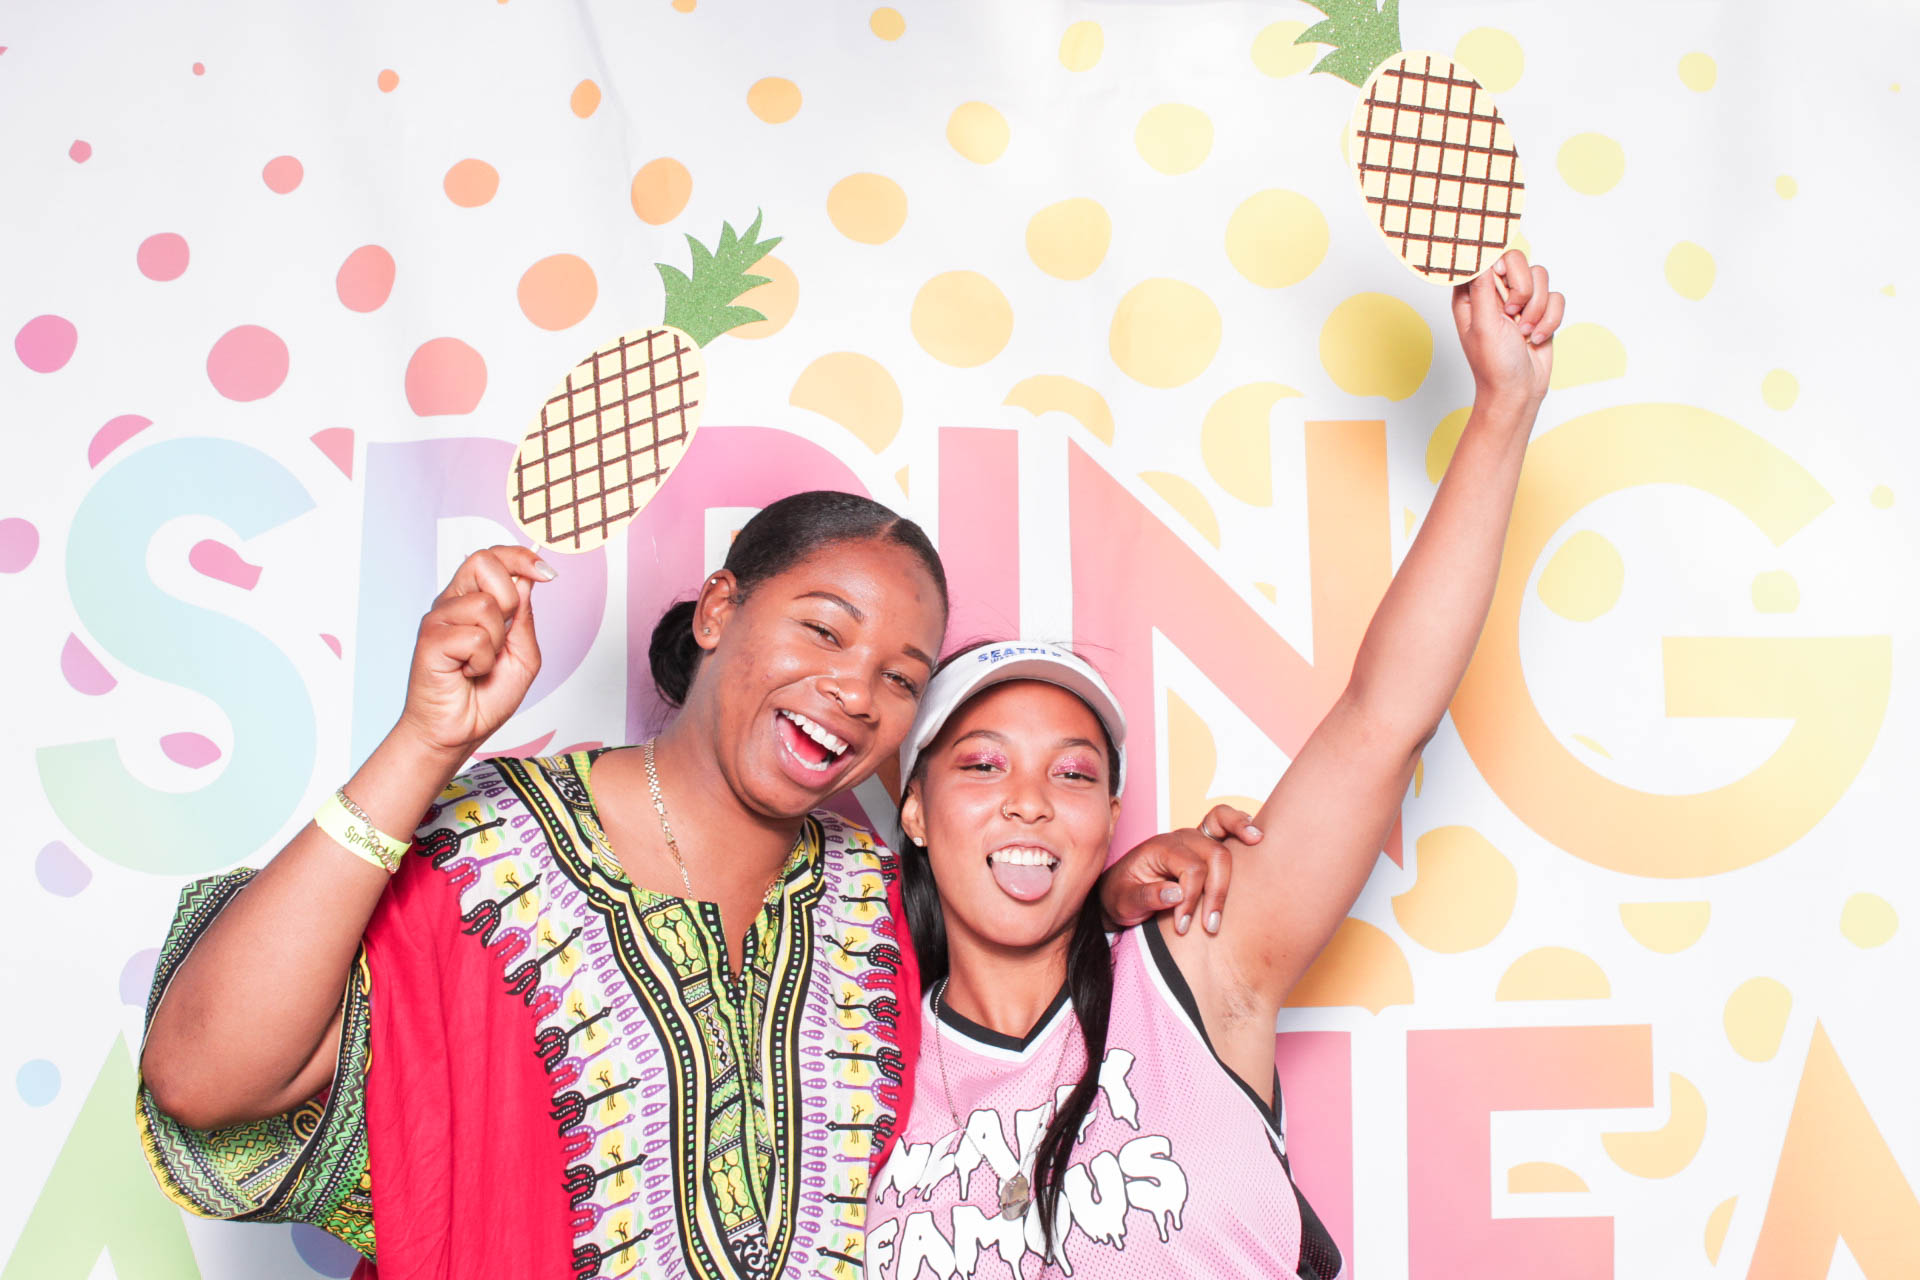 CHROMA PHOTOBOOTH FESTIVALS CONCERTS